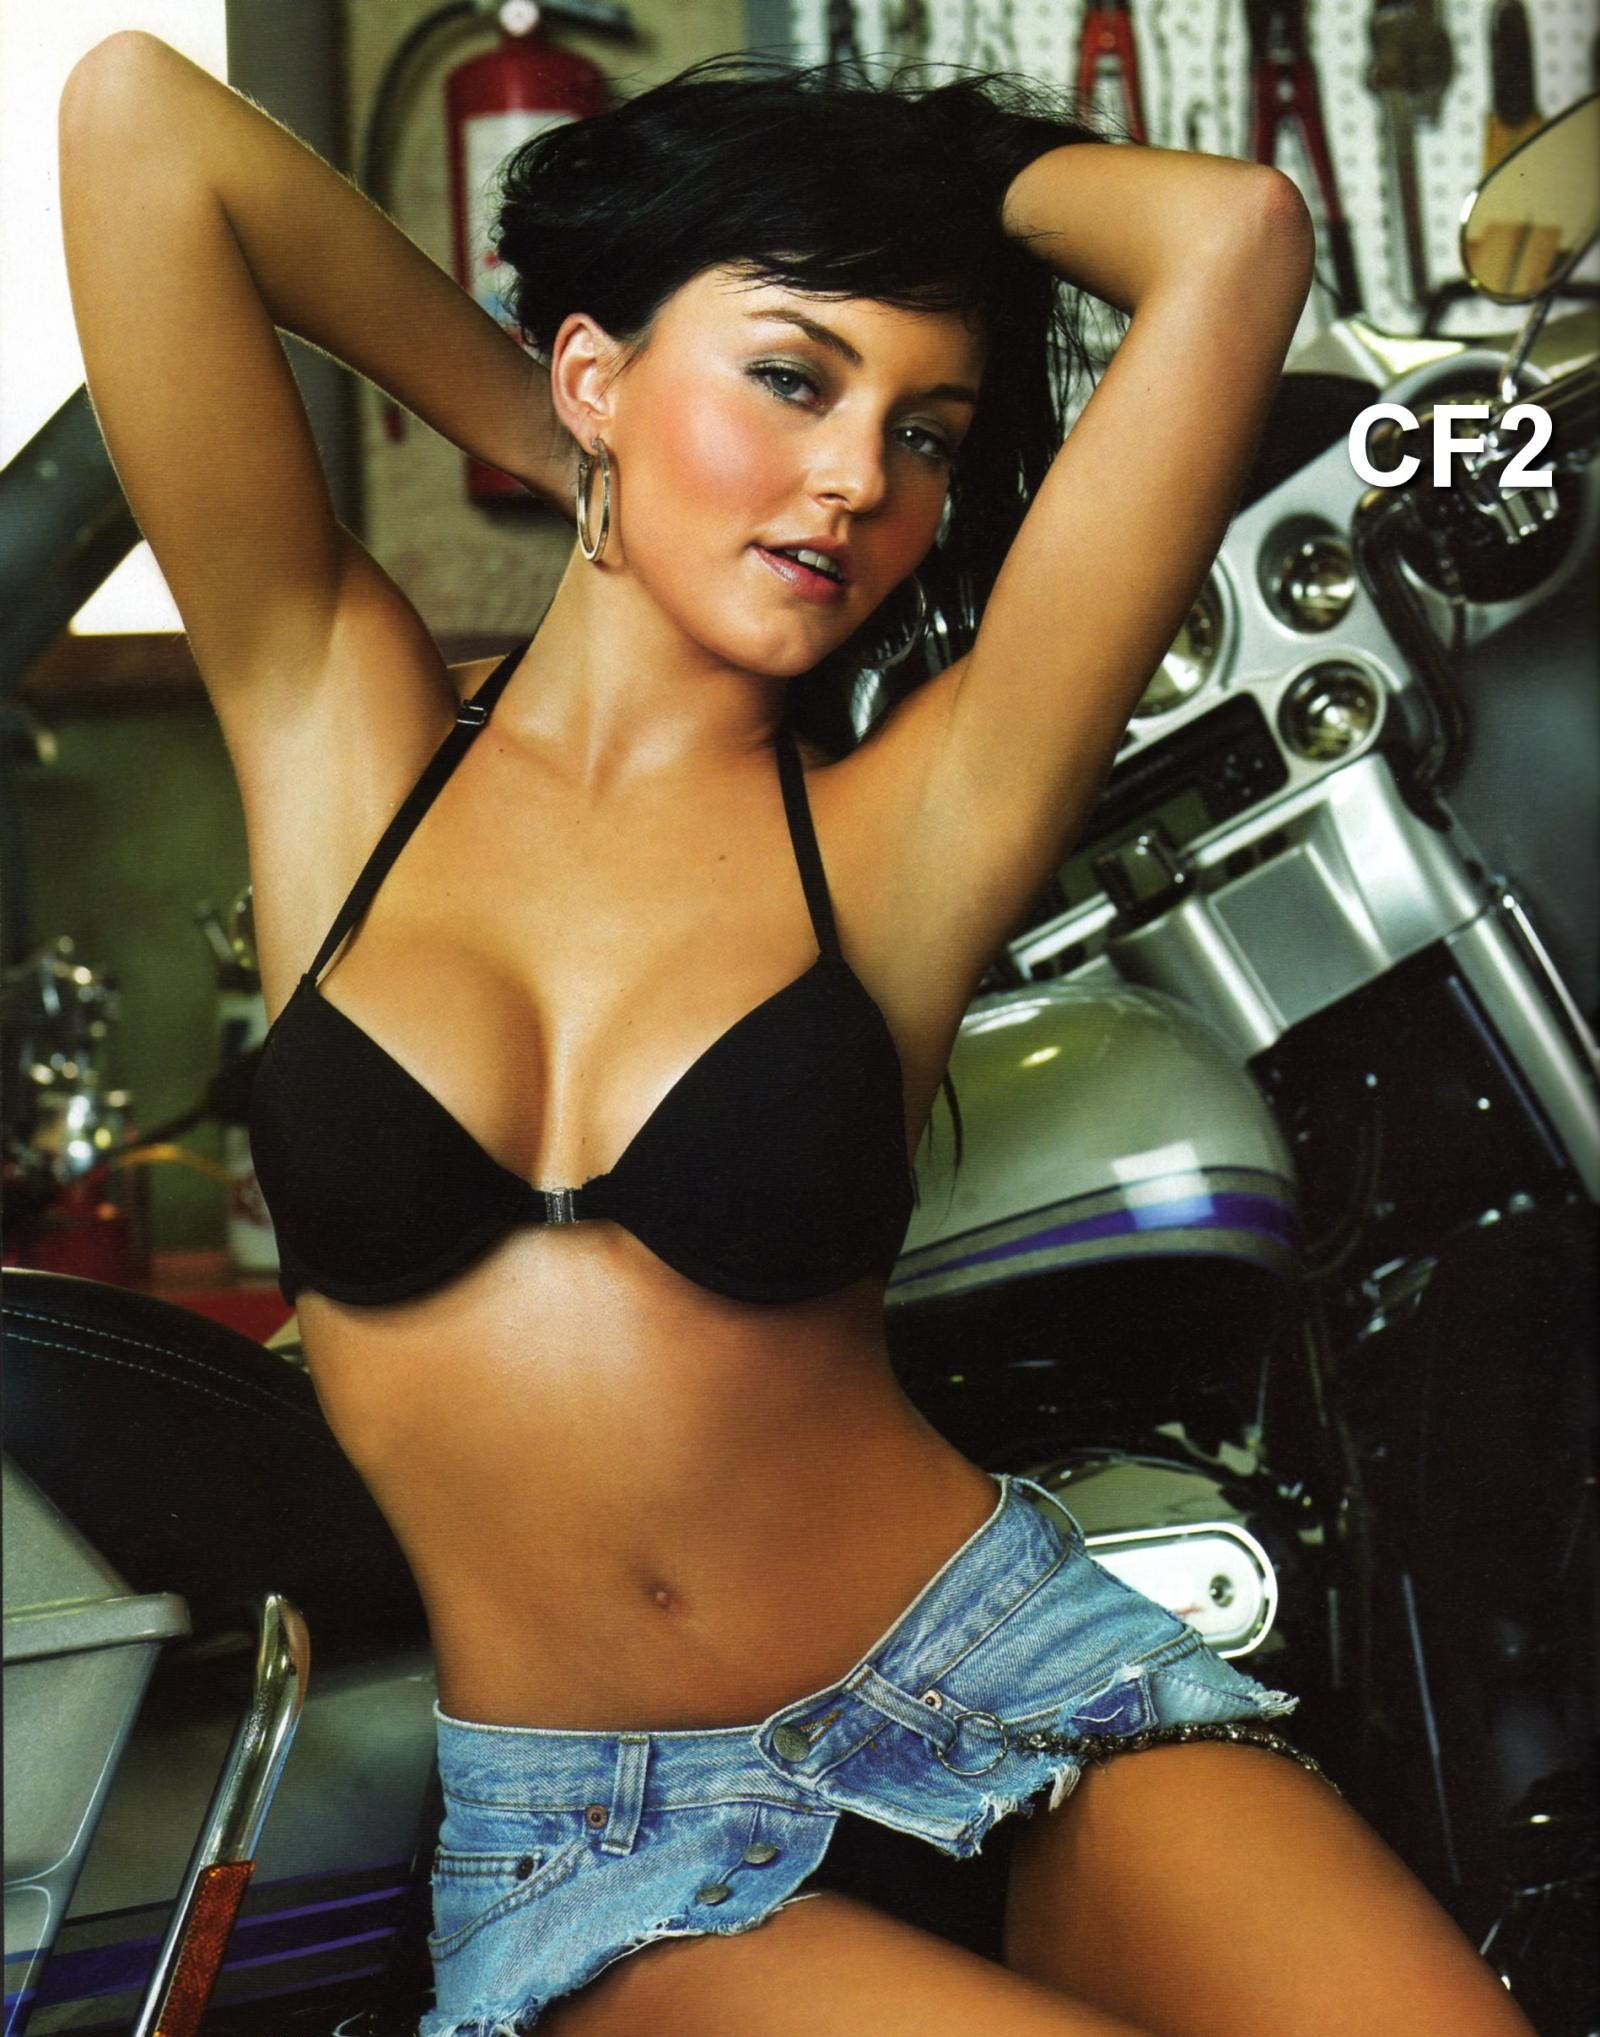 angelique boyer by cemeterygirls - photo #22